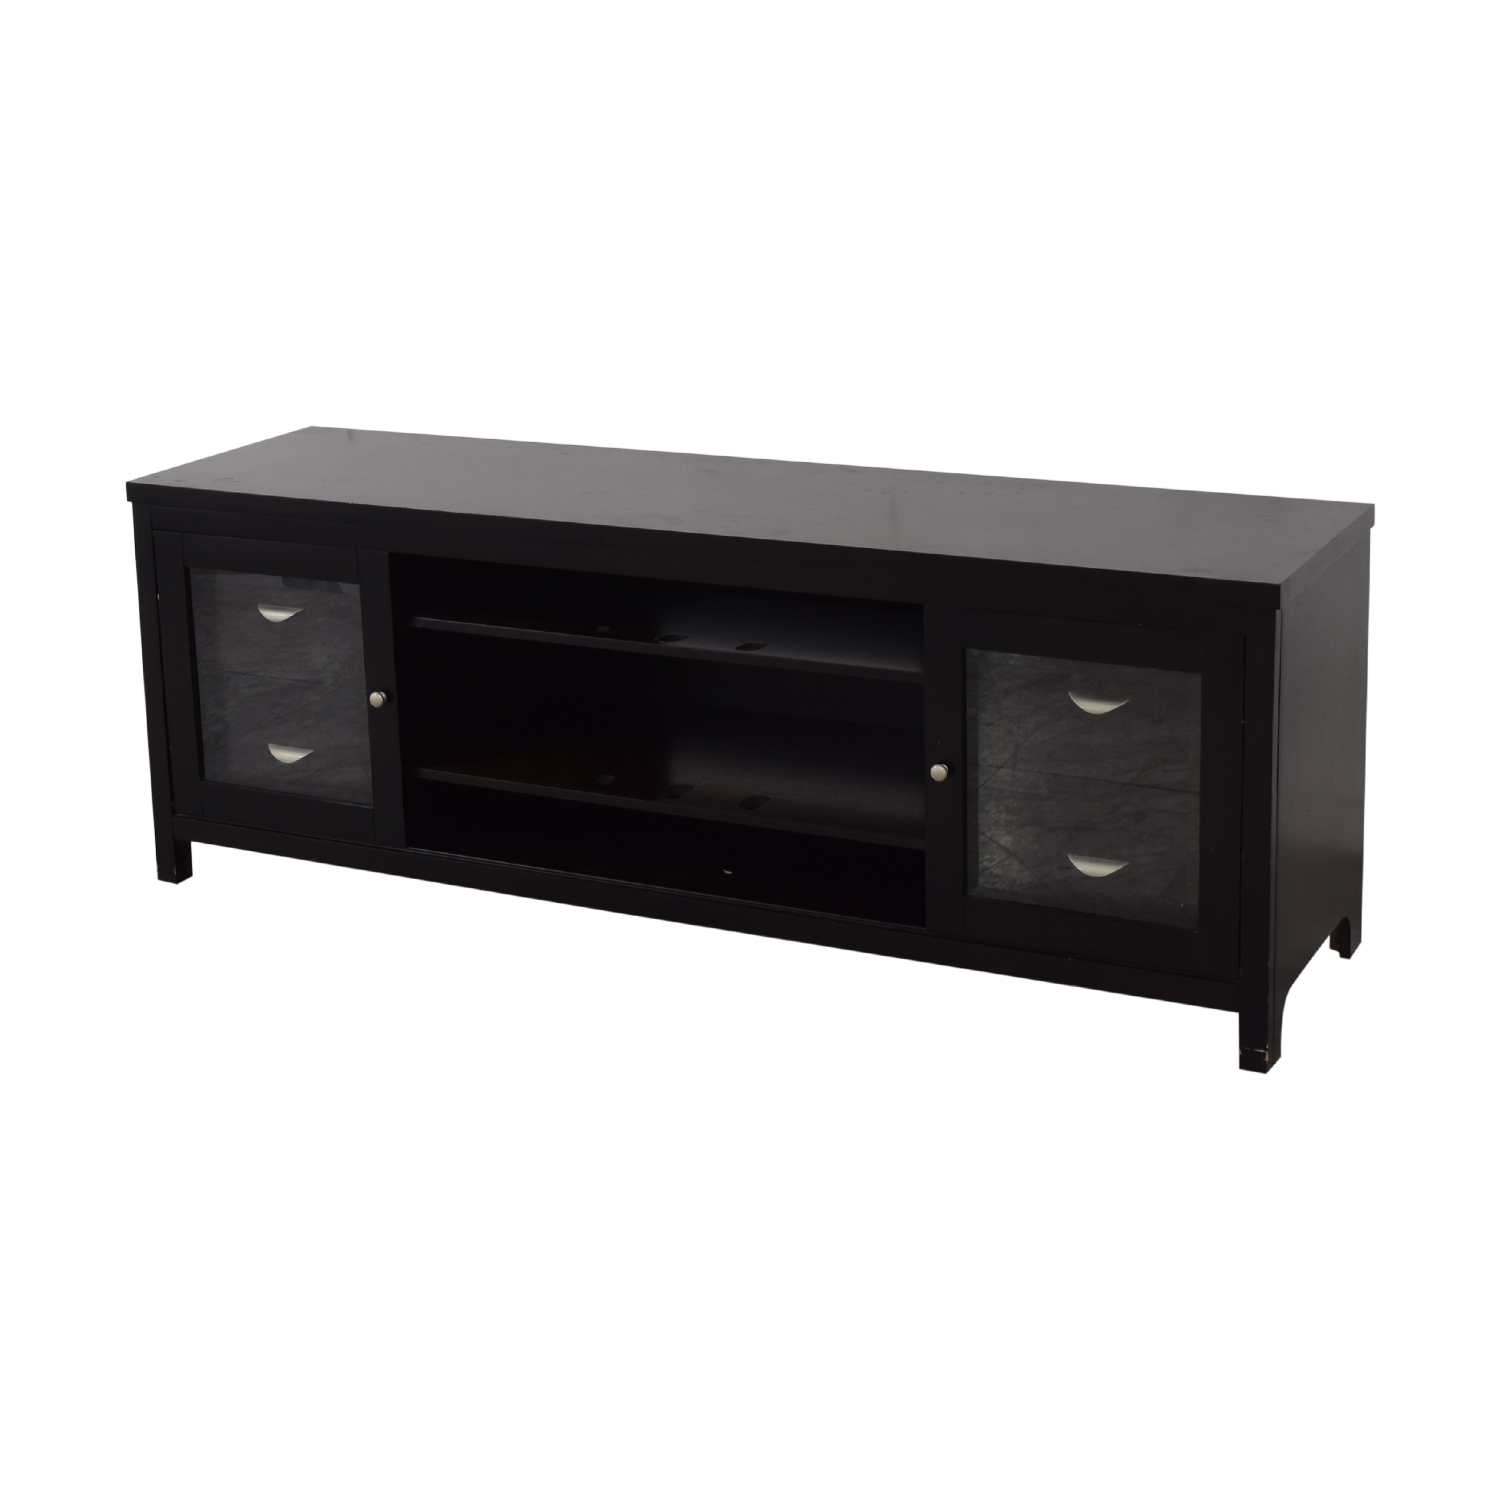 Abbyson Abbyson Clarkston Solid Wood Media Console dimensions